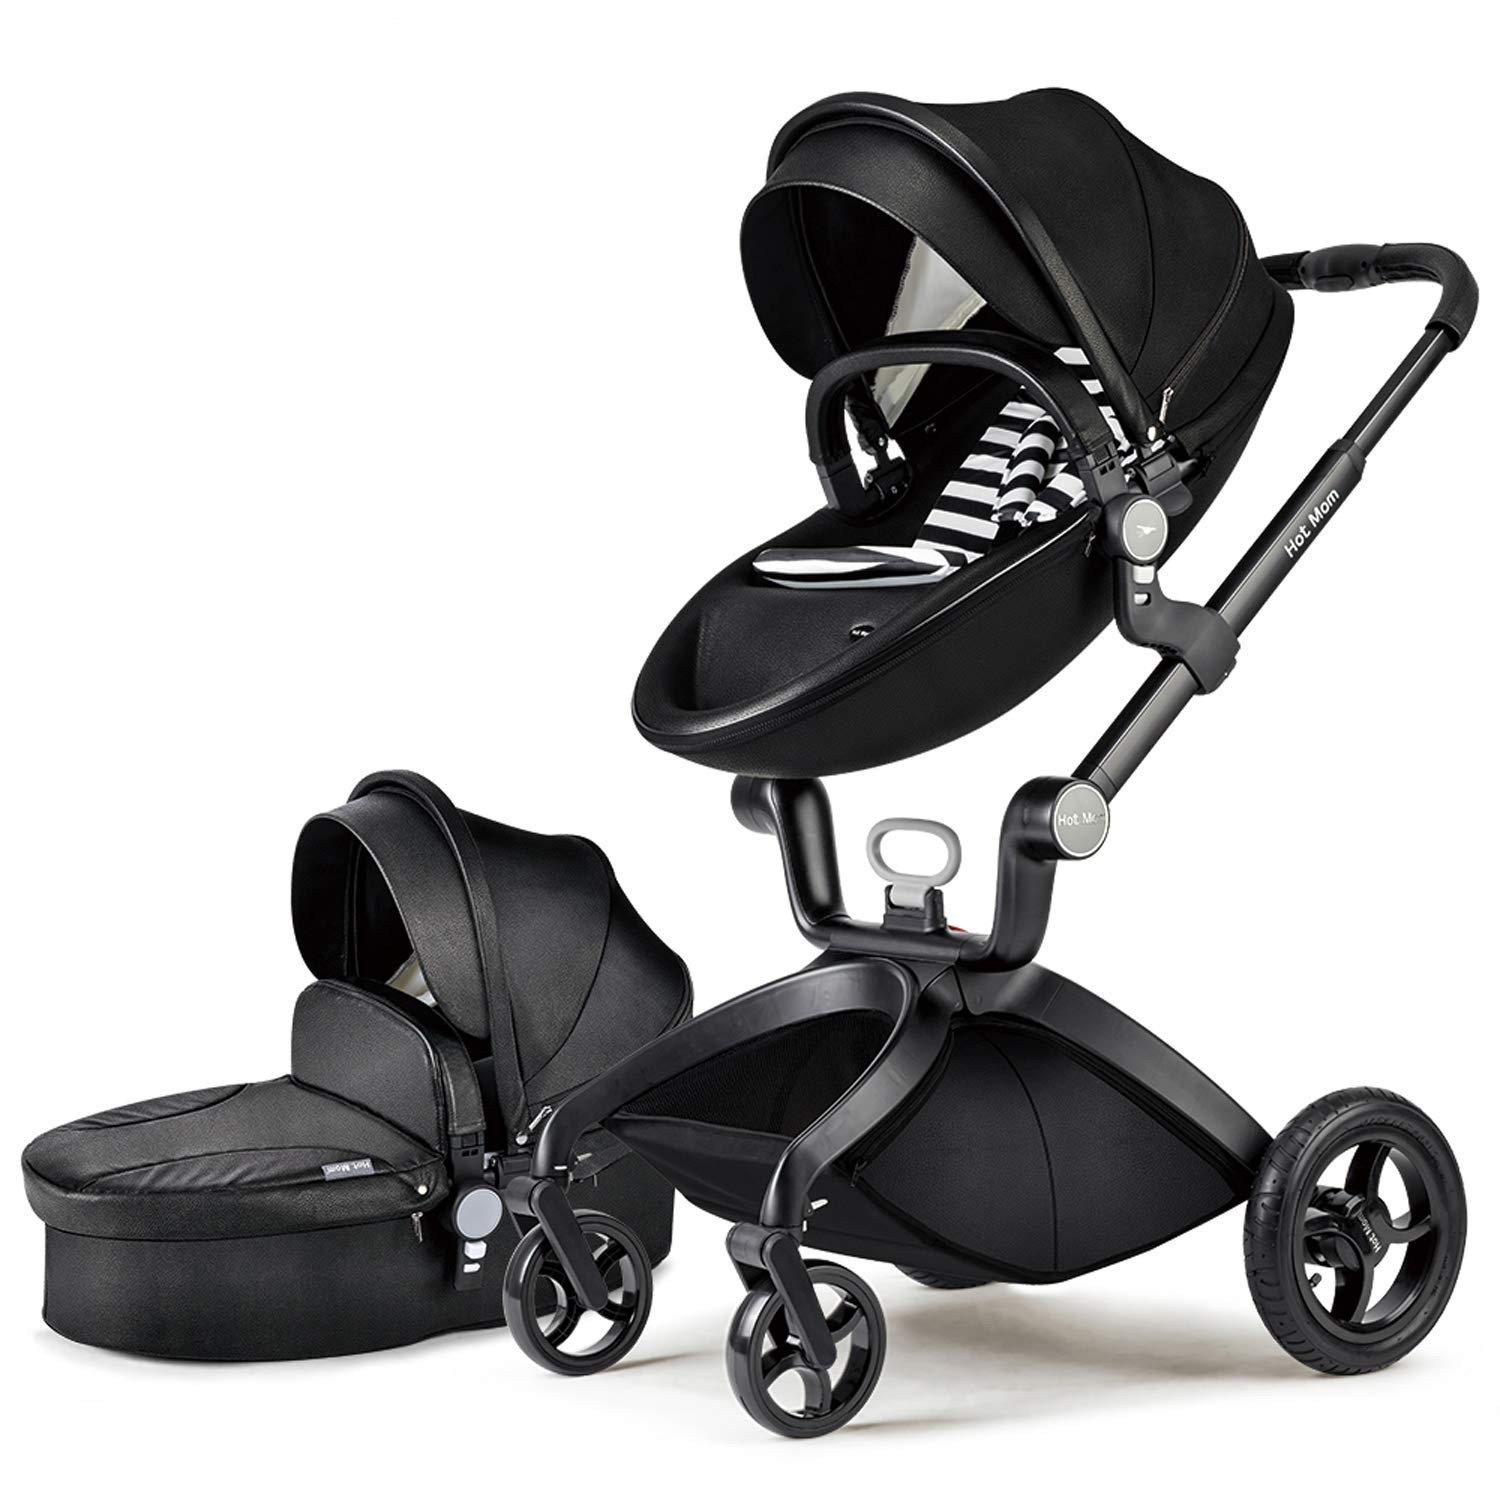 Adjustable Seat Height Stroller